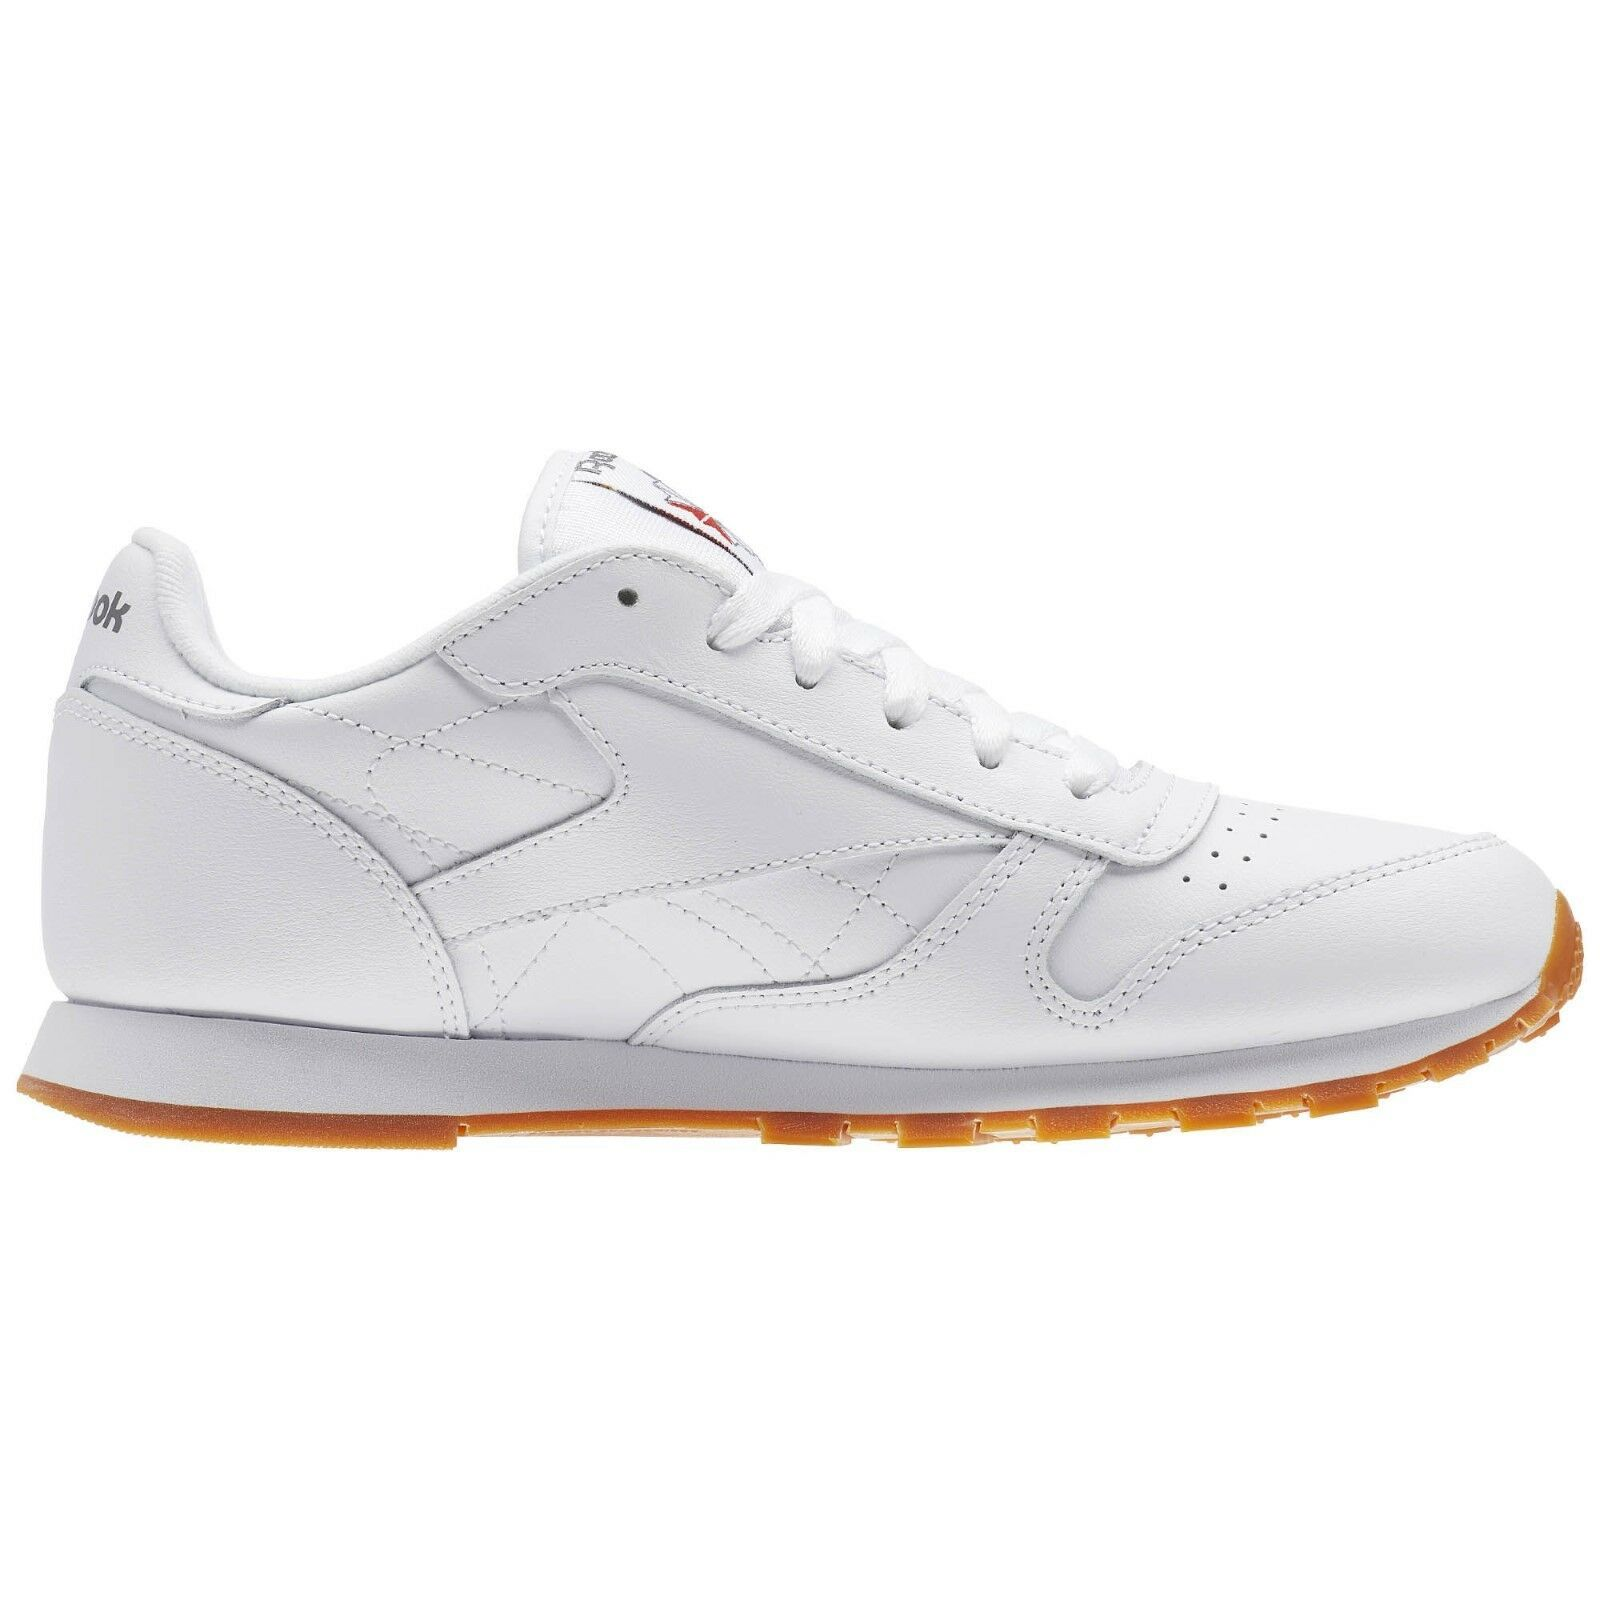 Reebok Classic GS CL V69624 White Gum Leather Shoes Youth 4Y-7Y